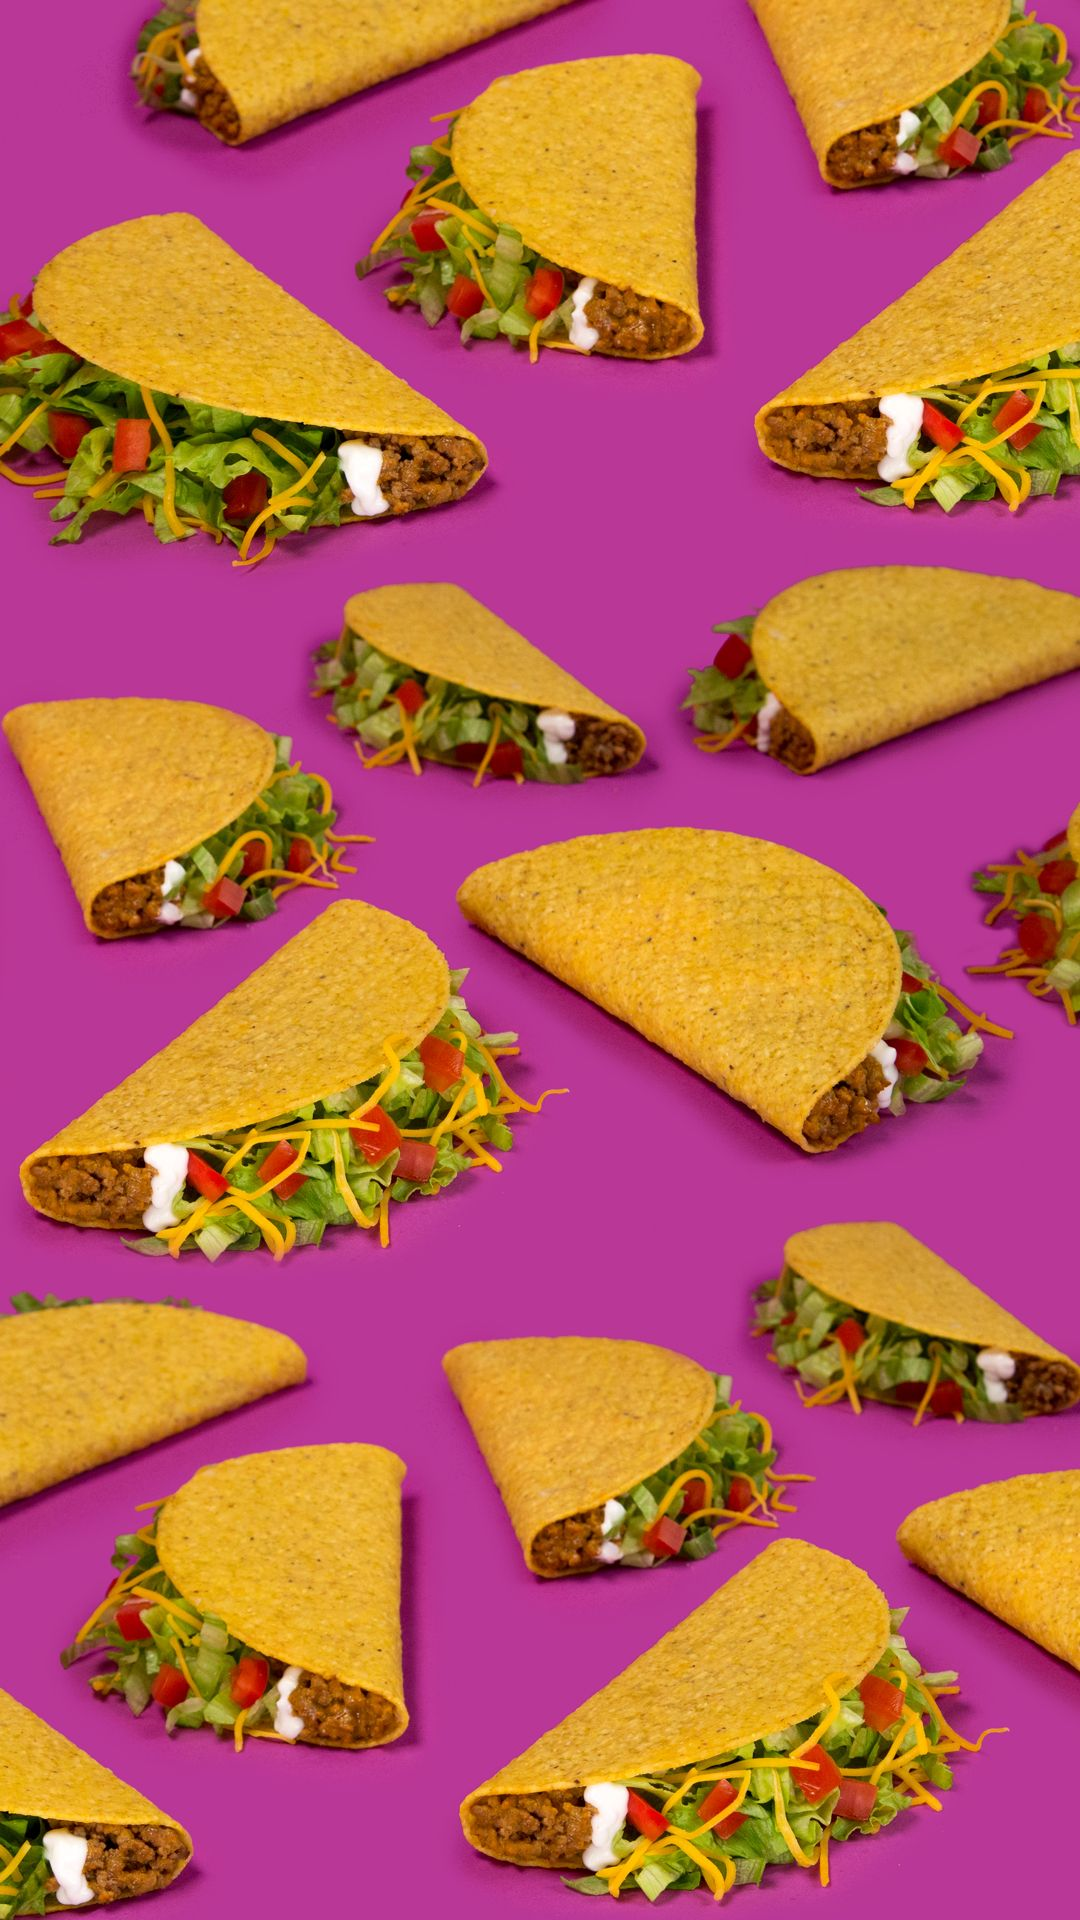 Great 9 Food Pictures For Your Android Or Iphone Wallpapers Android Iphone Wallpaper Taco Wallpaper Food Wallpaper Phone Wallpaper